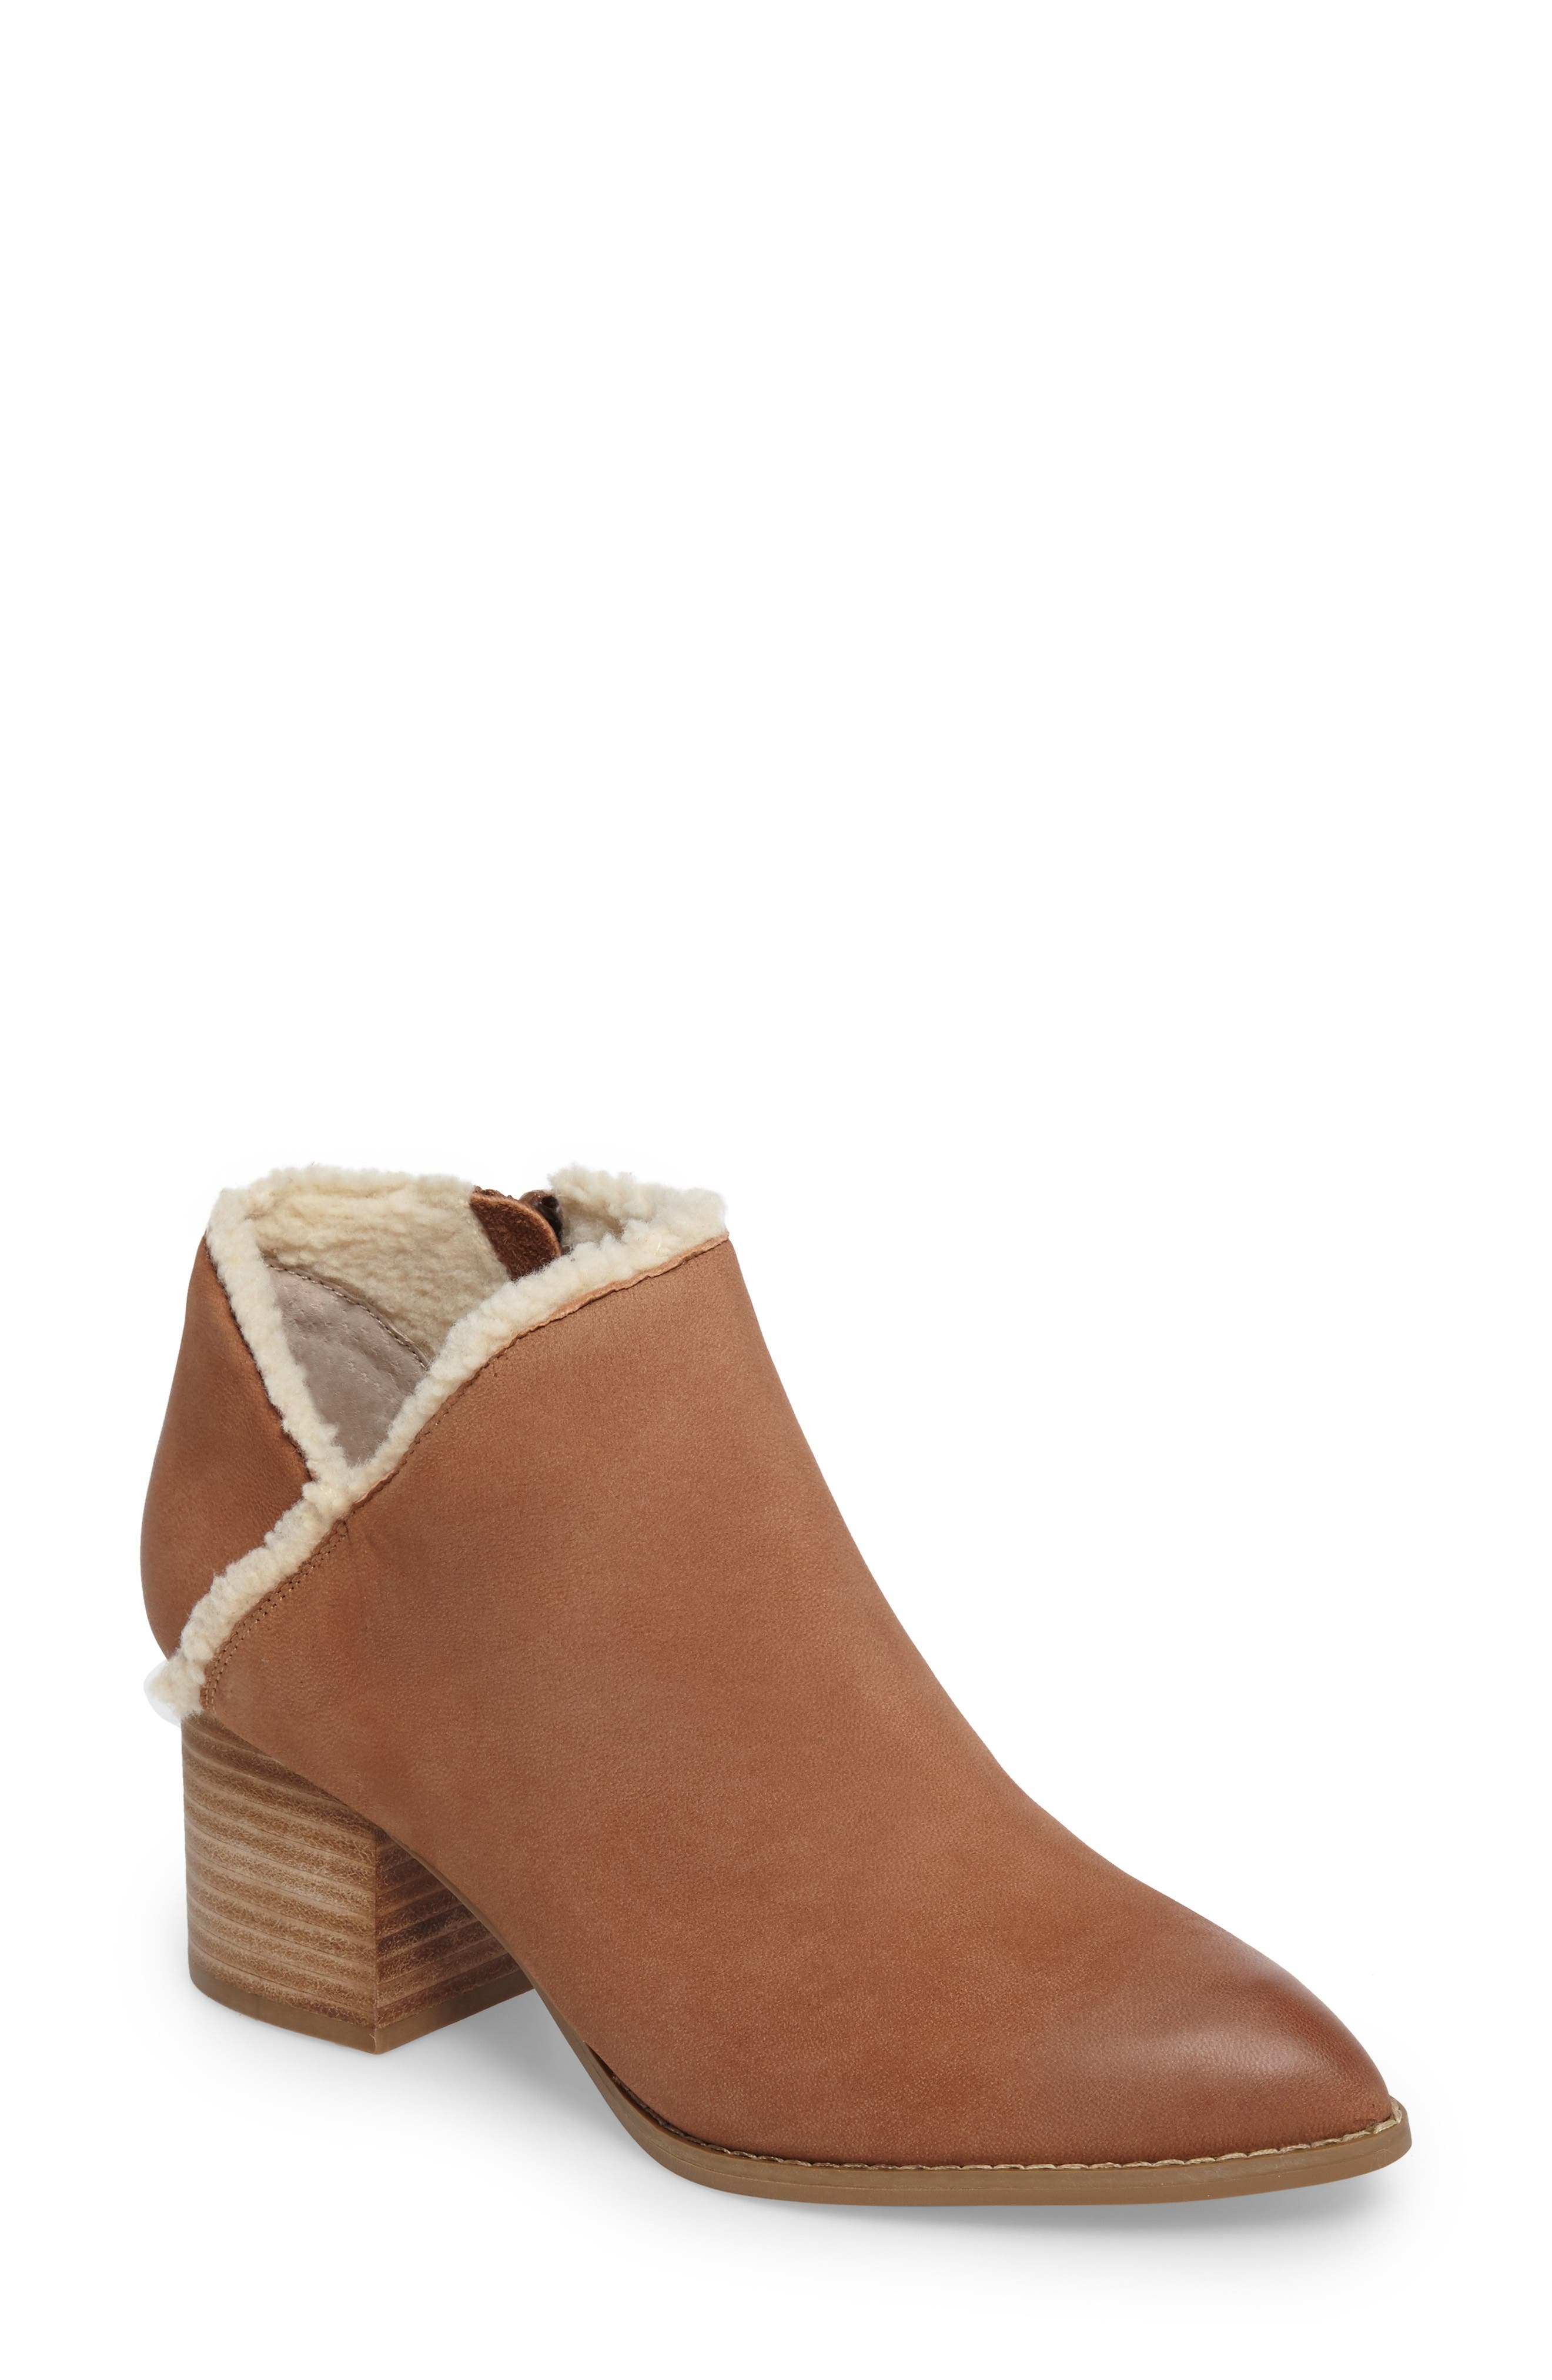 Alternate Image 1 Selected - Seychelles Preview Faux Fur Lined Bootie (Women)